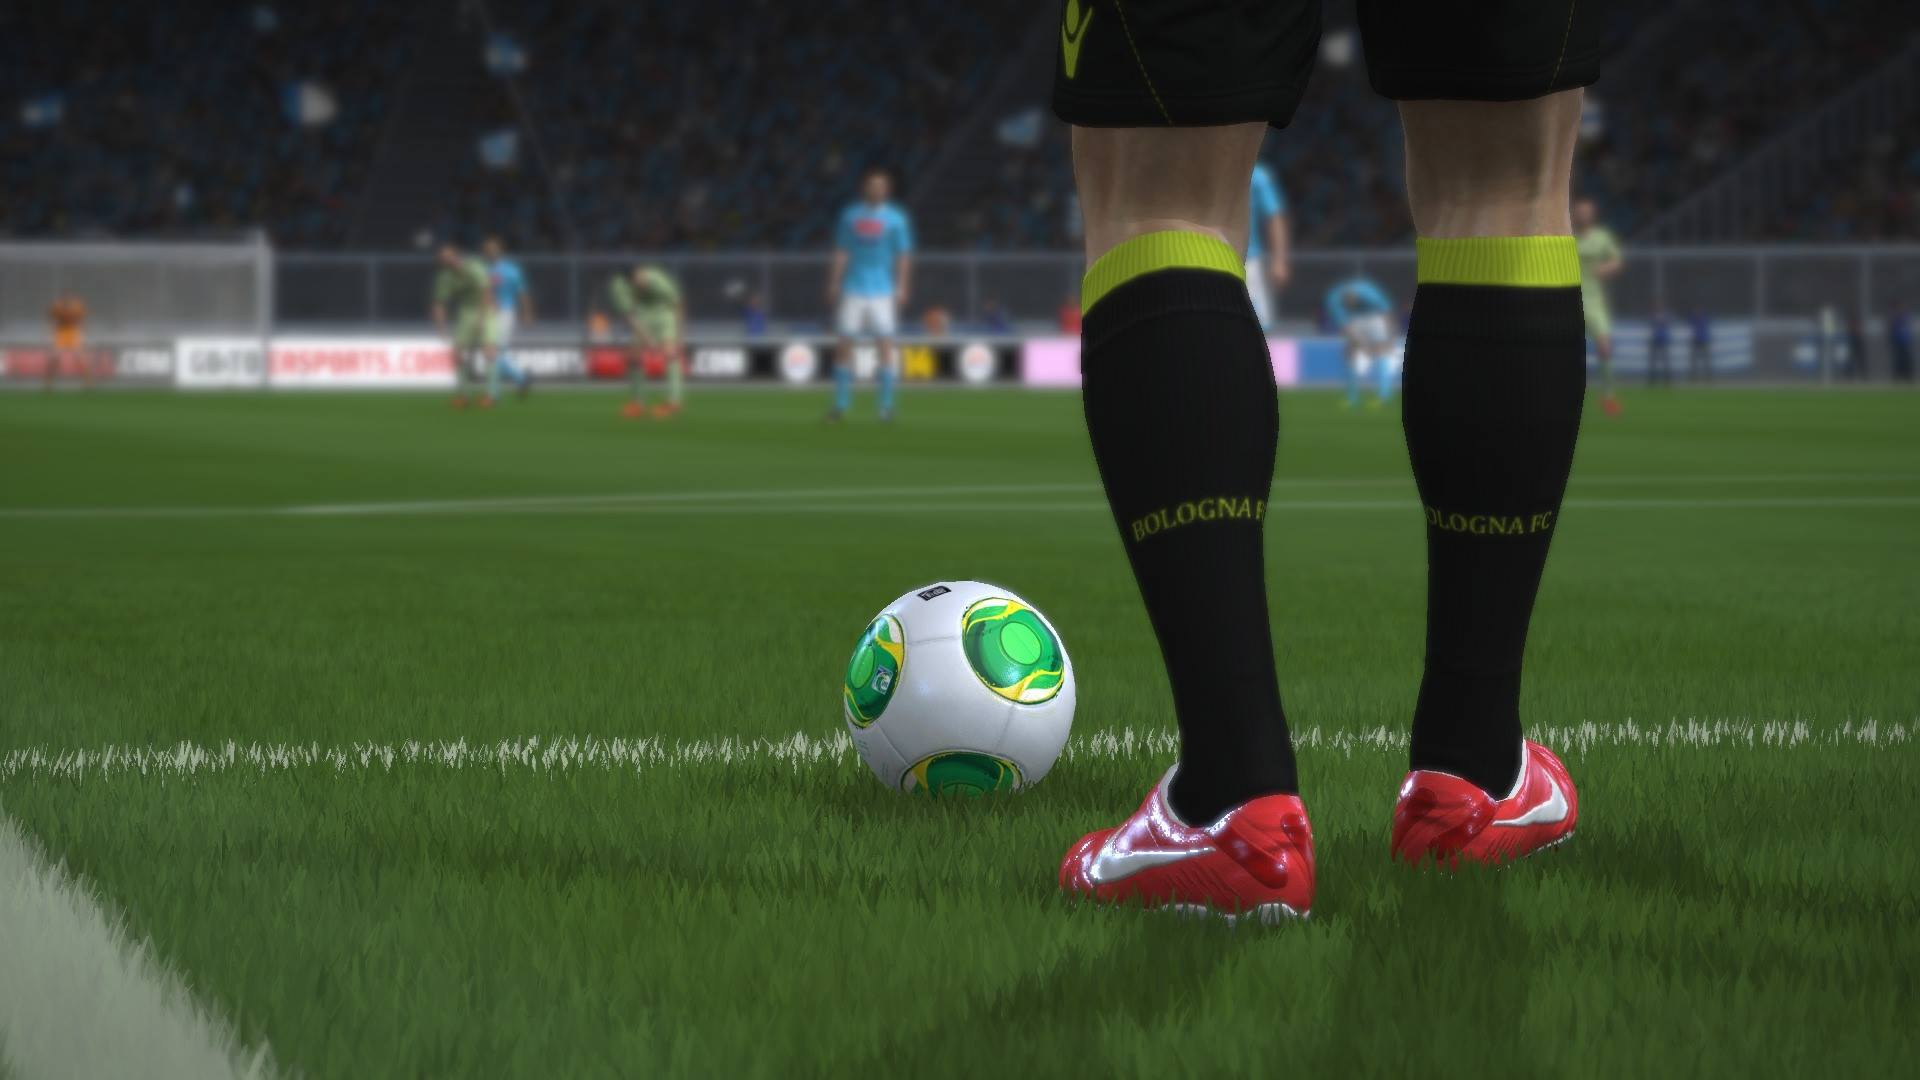 Fifa 14 full hd wallpaper and background image 1920x1080 id507711 video game fifa 14 wallpaper voltagebd Images